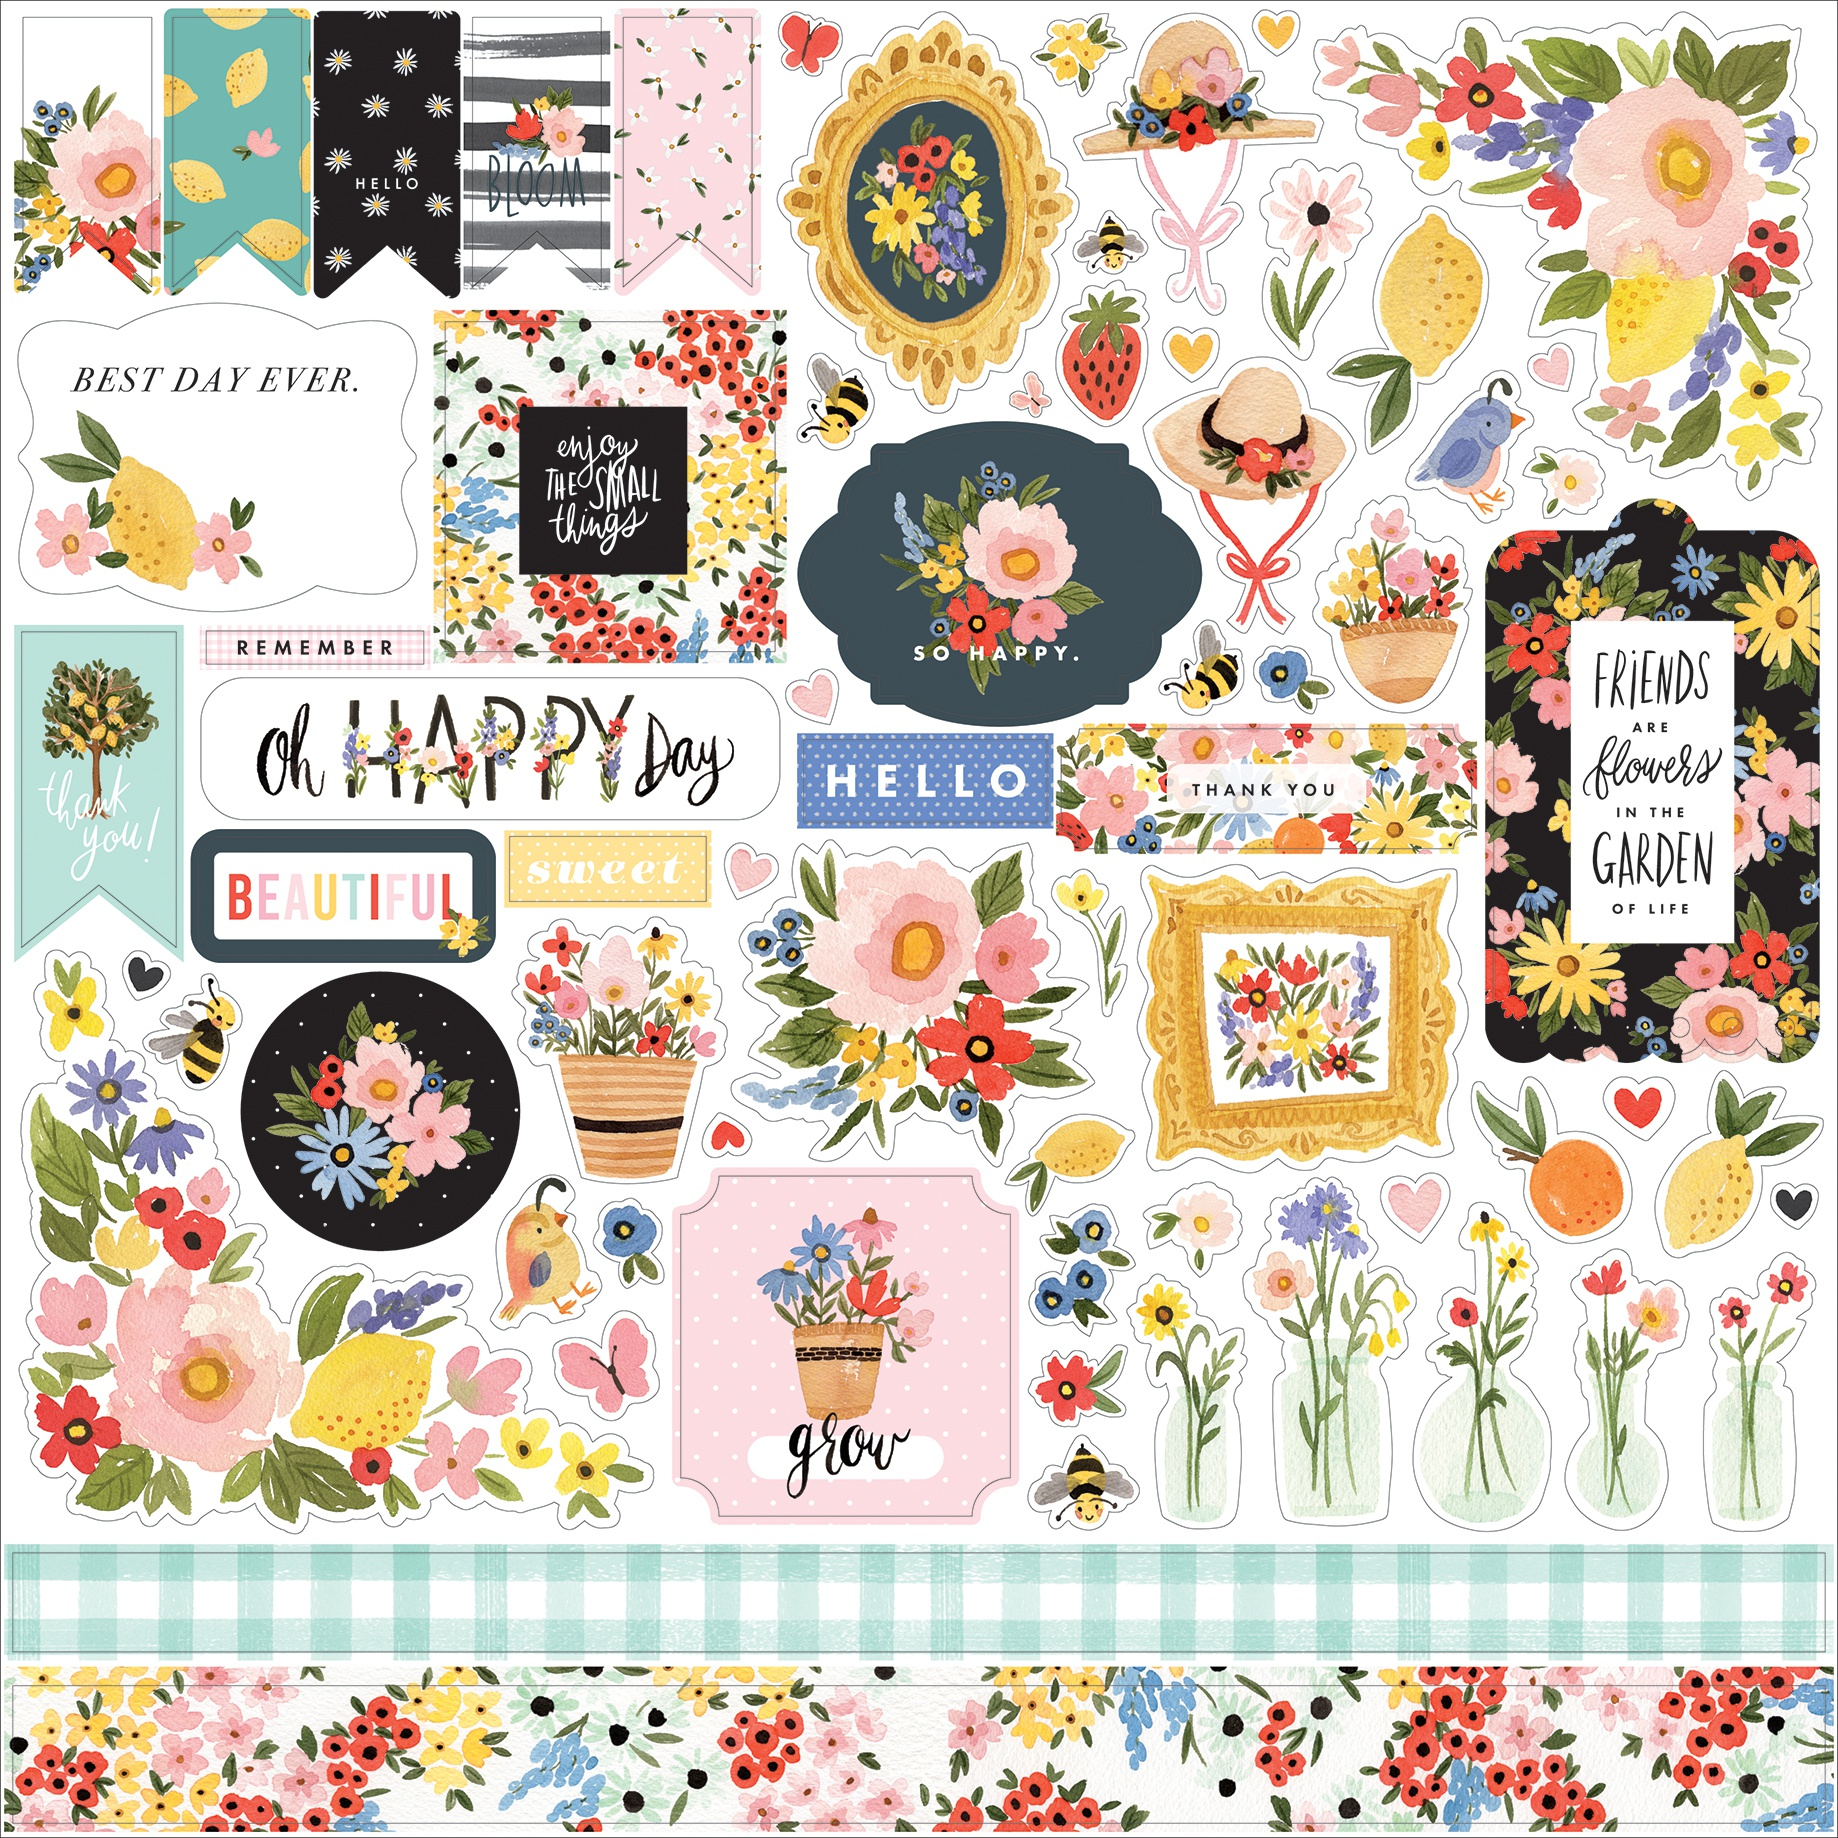 Oh Happy Day Spring Cardstock Stickers 12X12-Elements